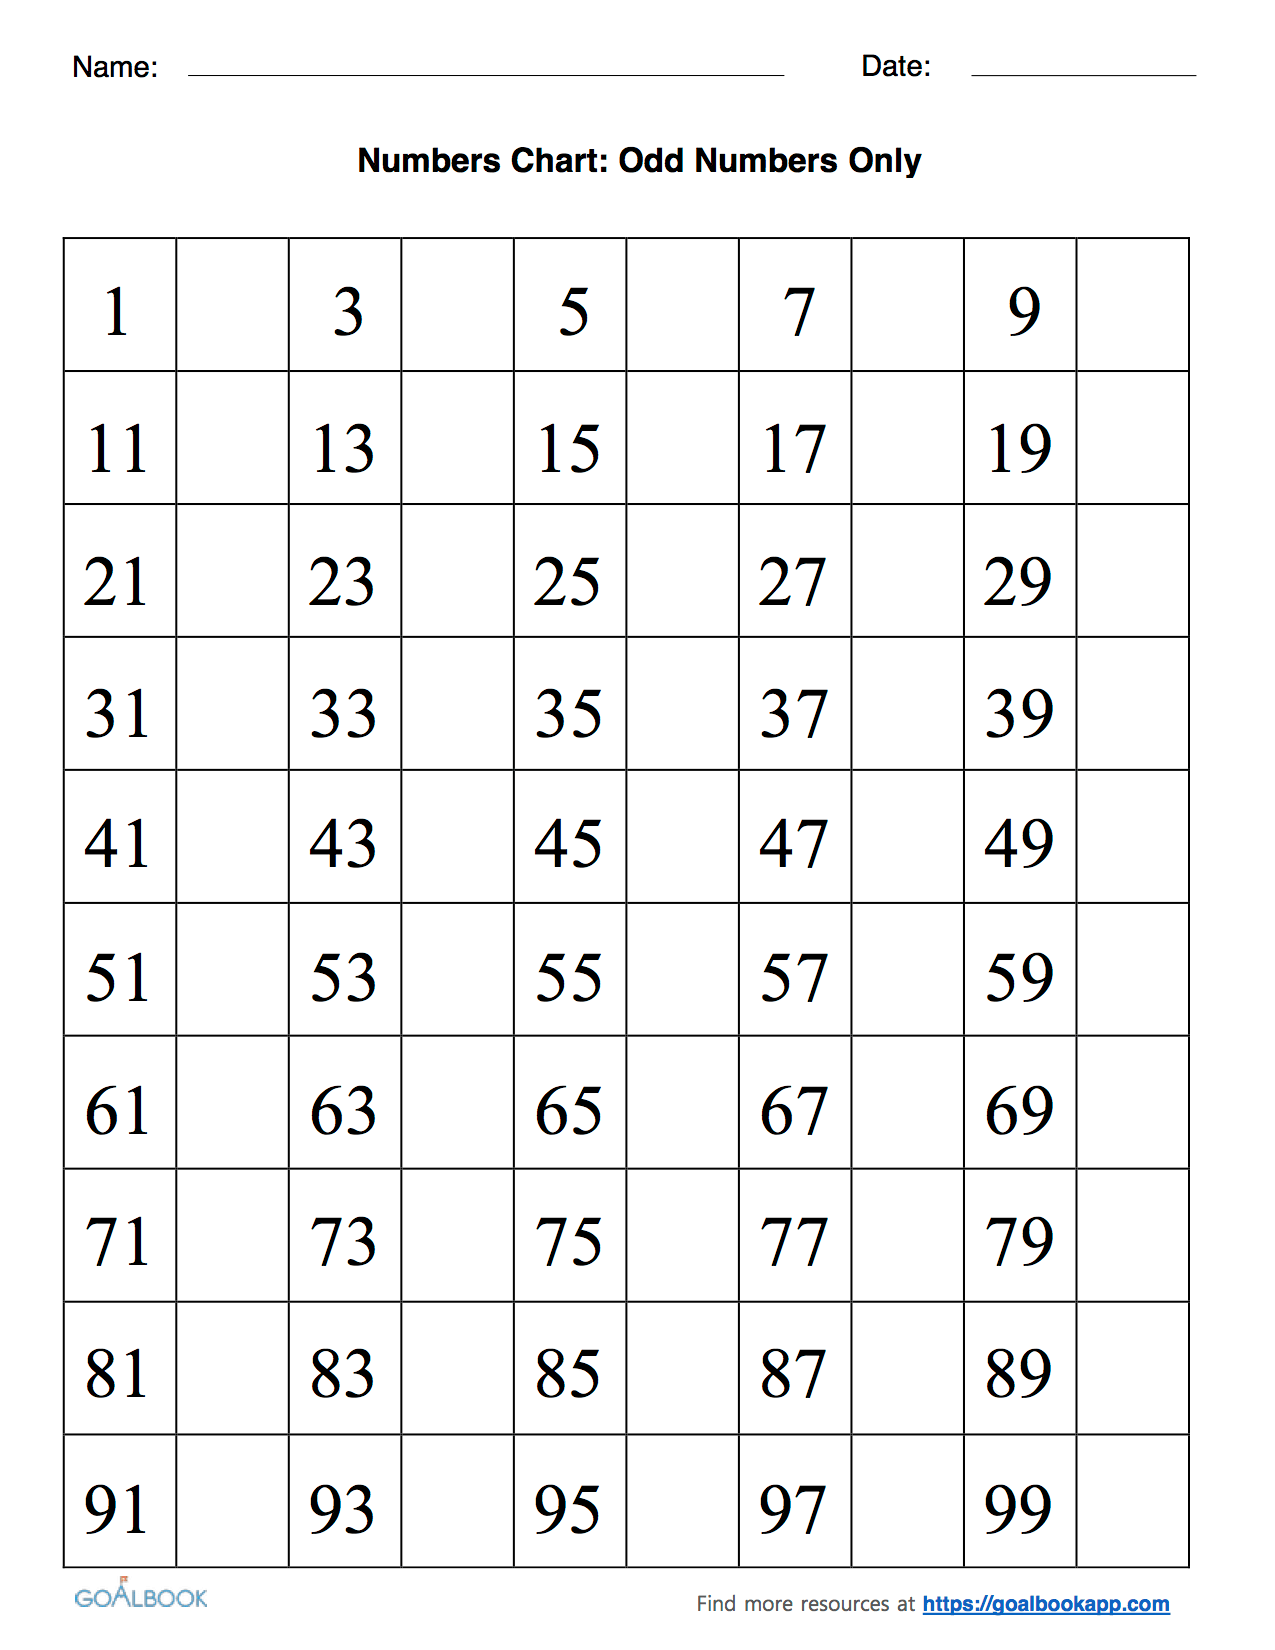 Numbers Chart